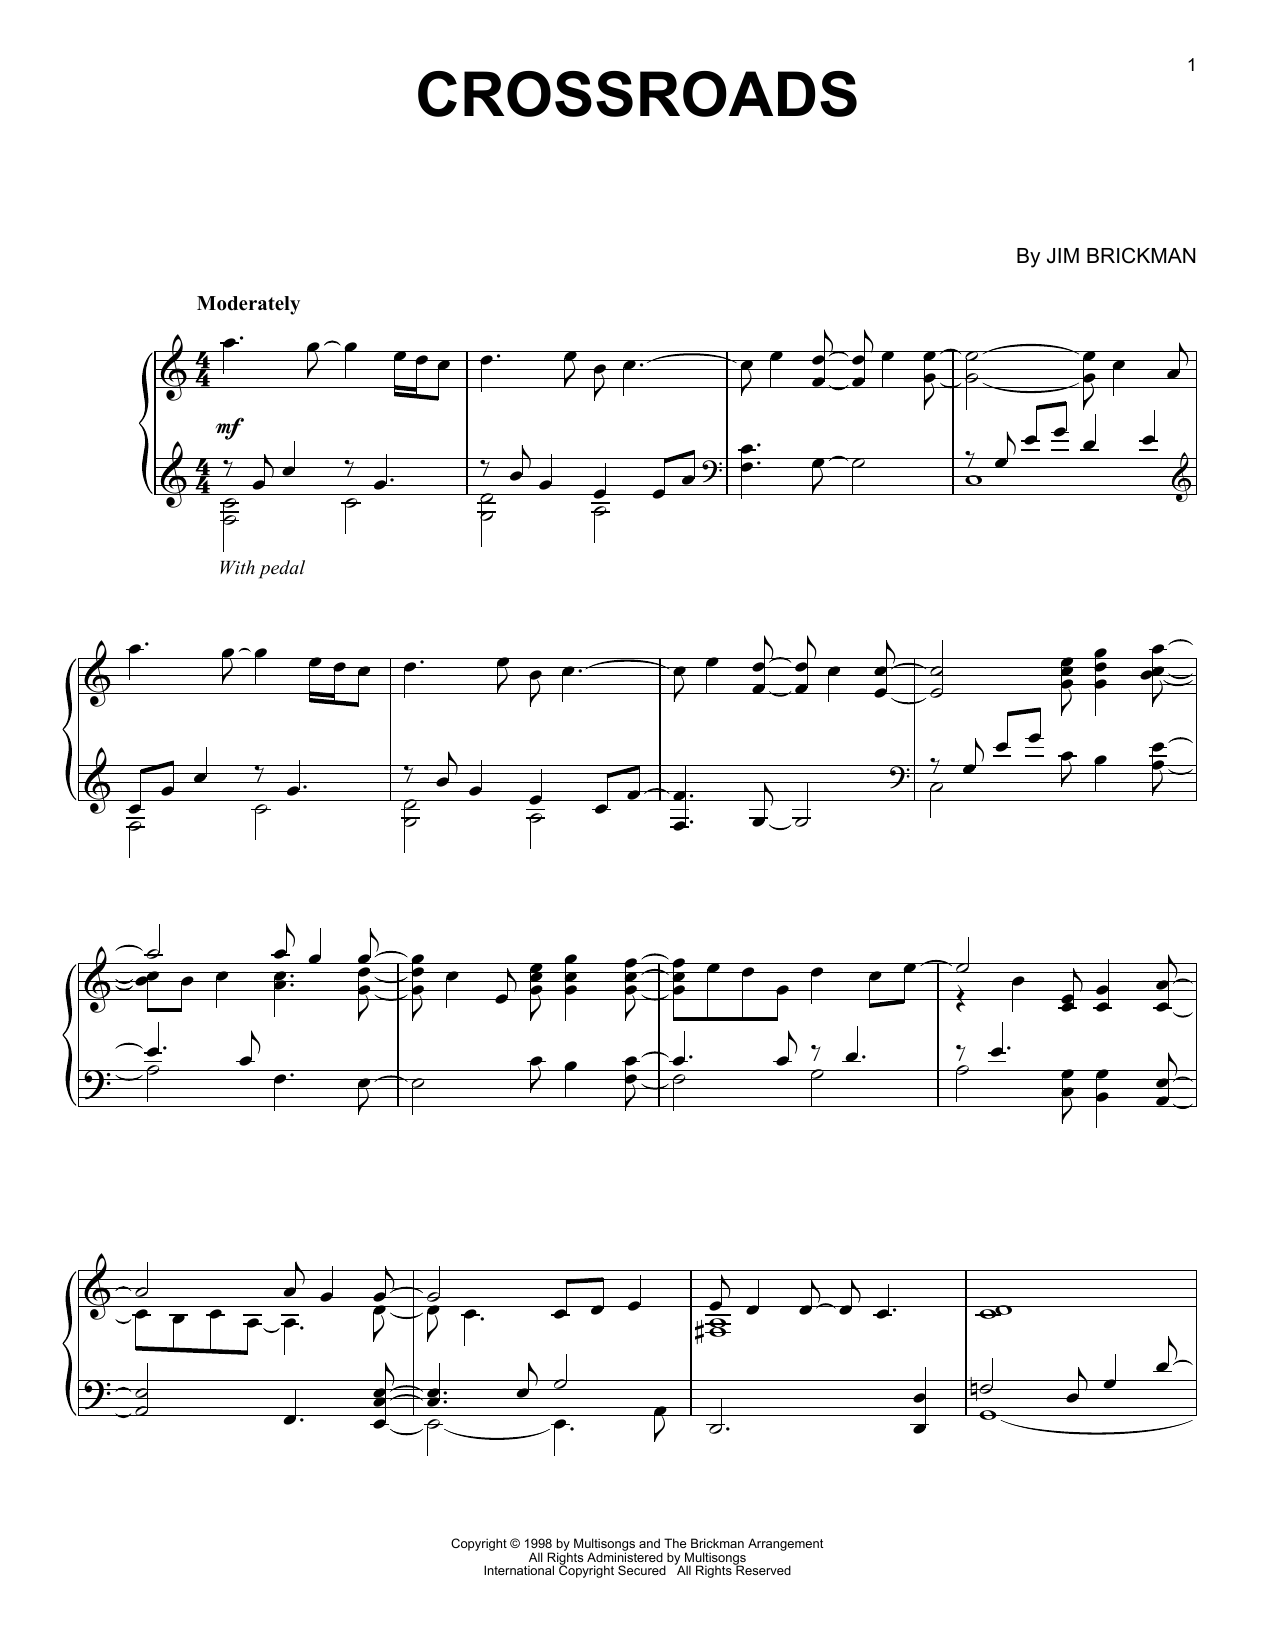 Download Jim Brickman 'Crossroads' Digital Sheet Music Notes & Chords and start playing in minutes